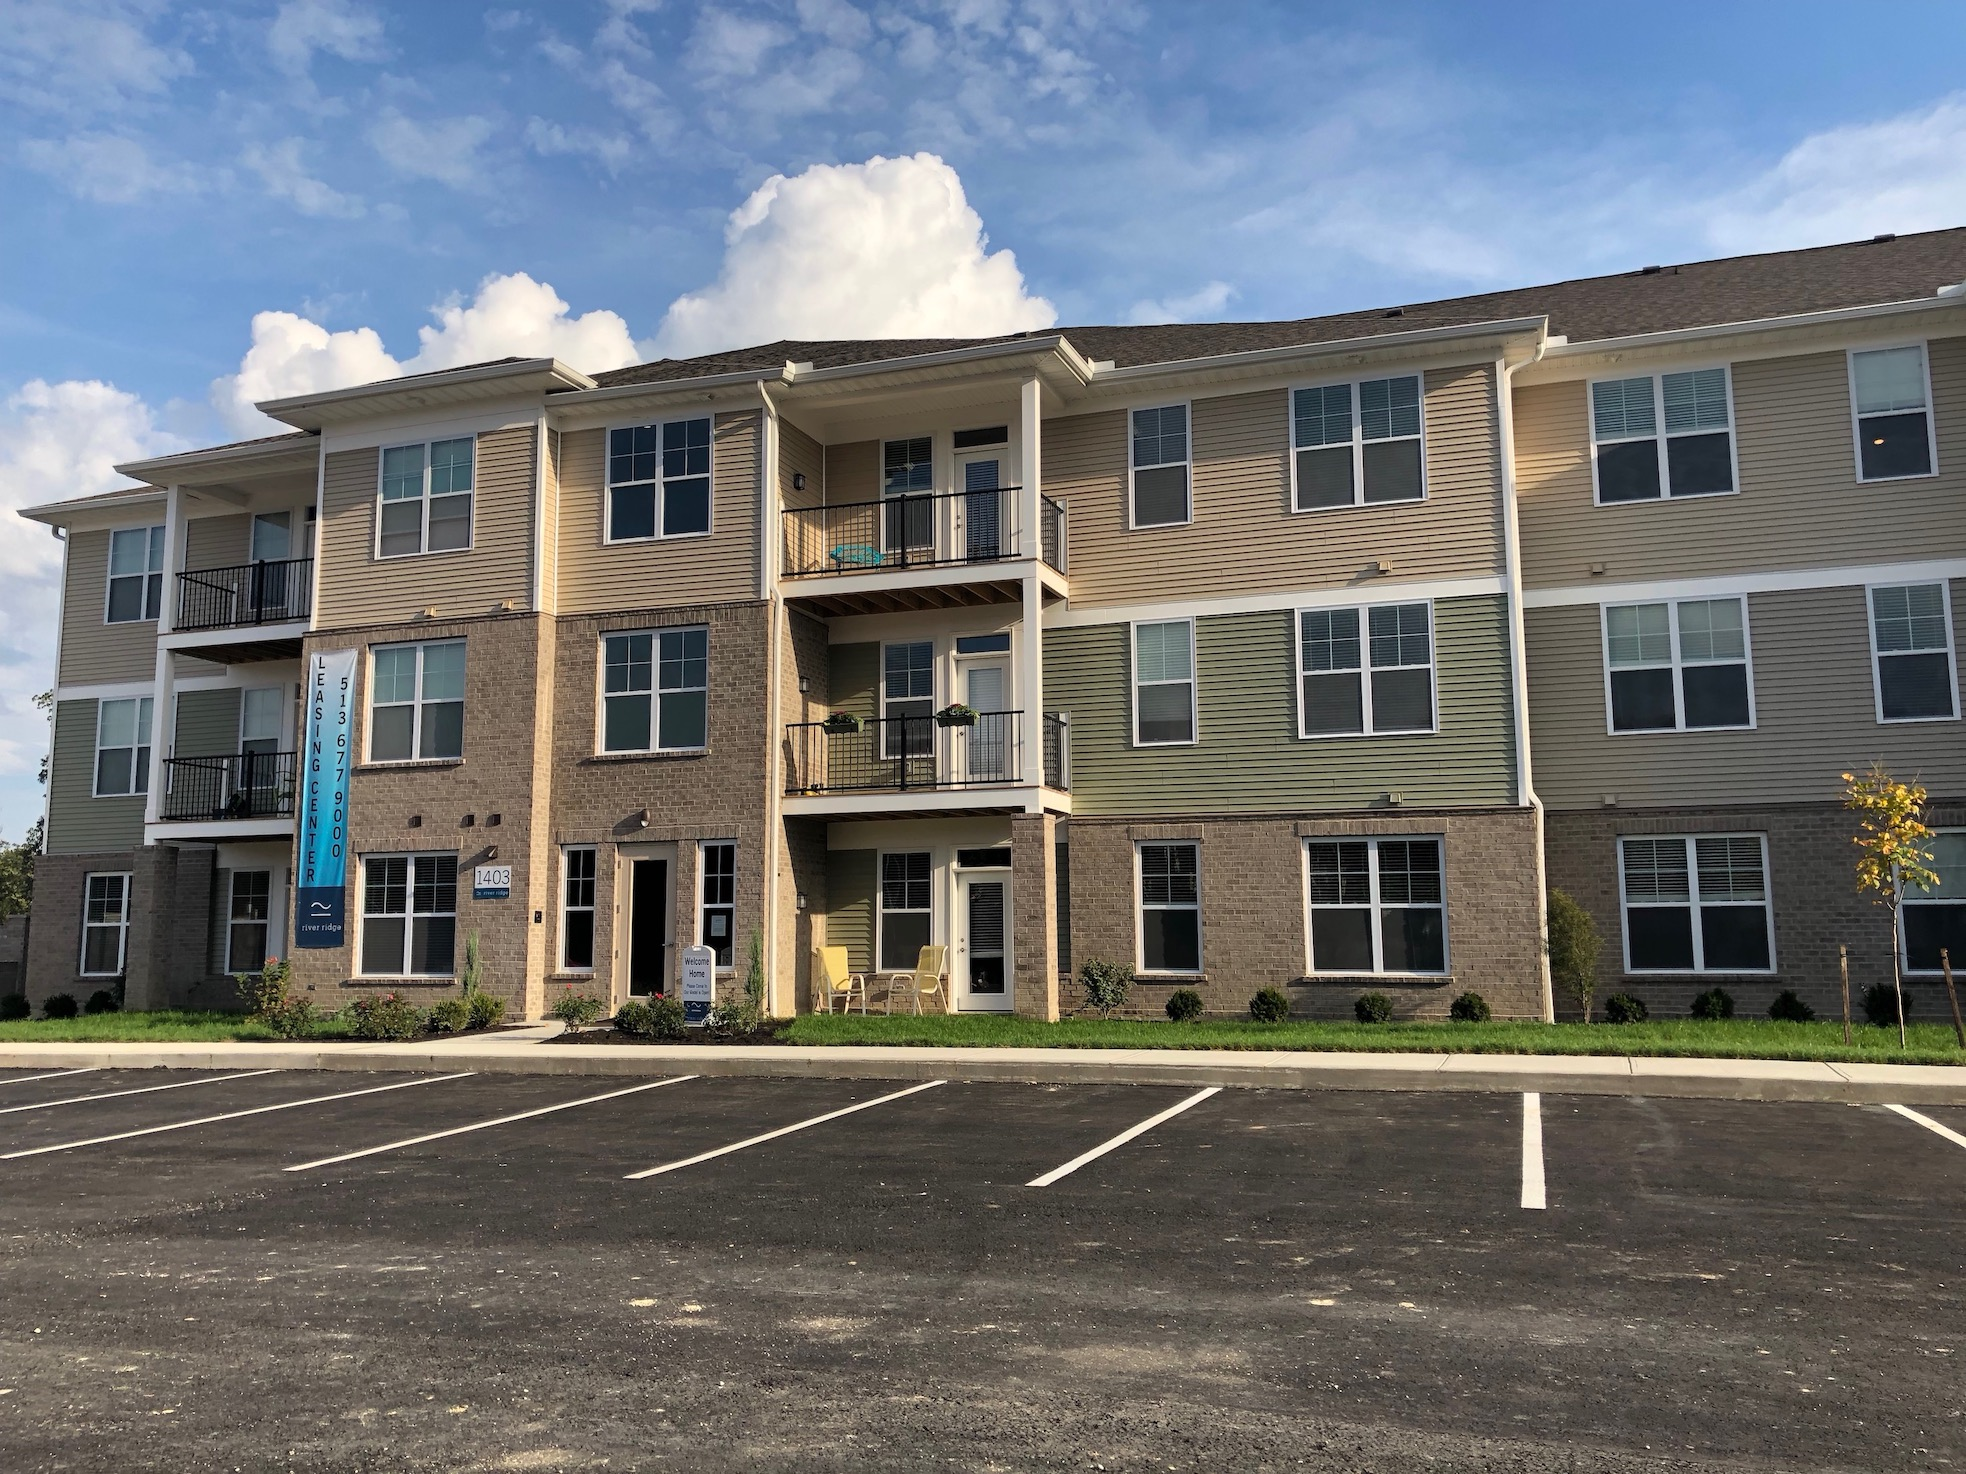 Loveland Apartment Rentals at River Ridge Apartments in Loveland, Ohio